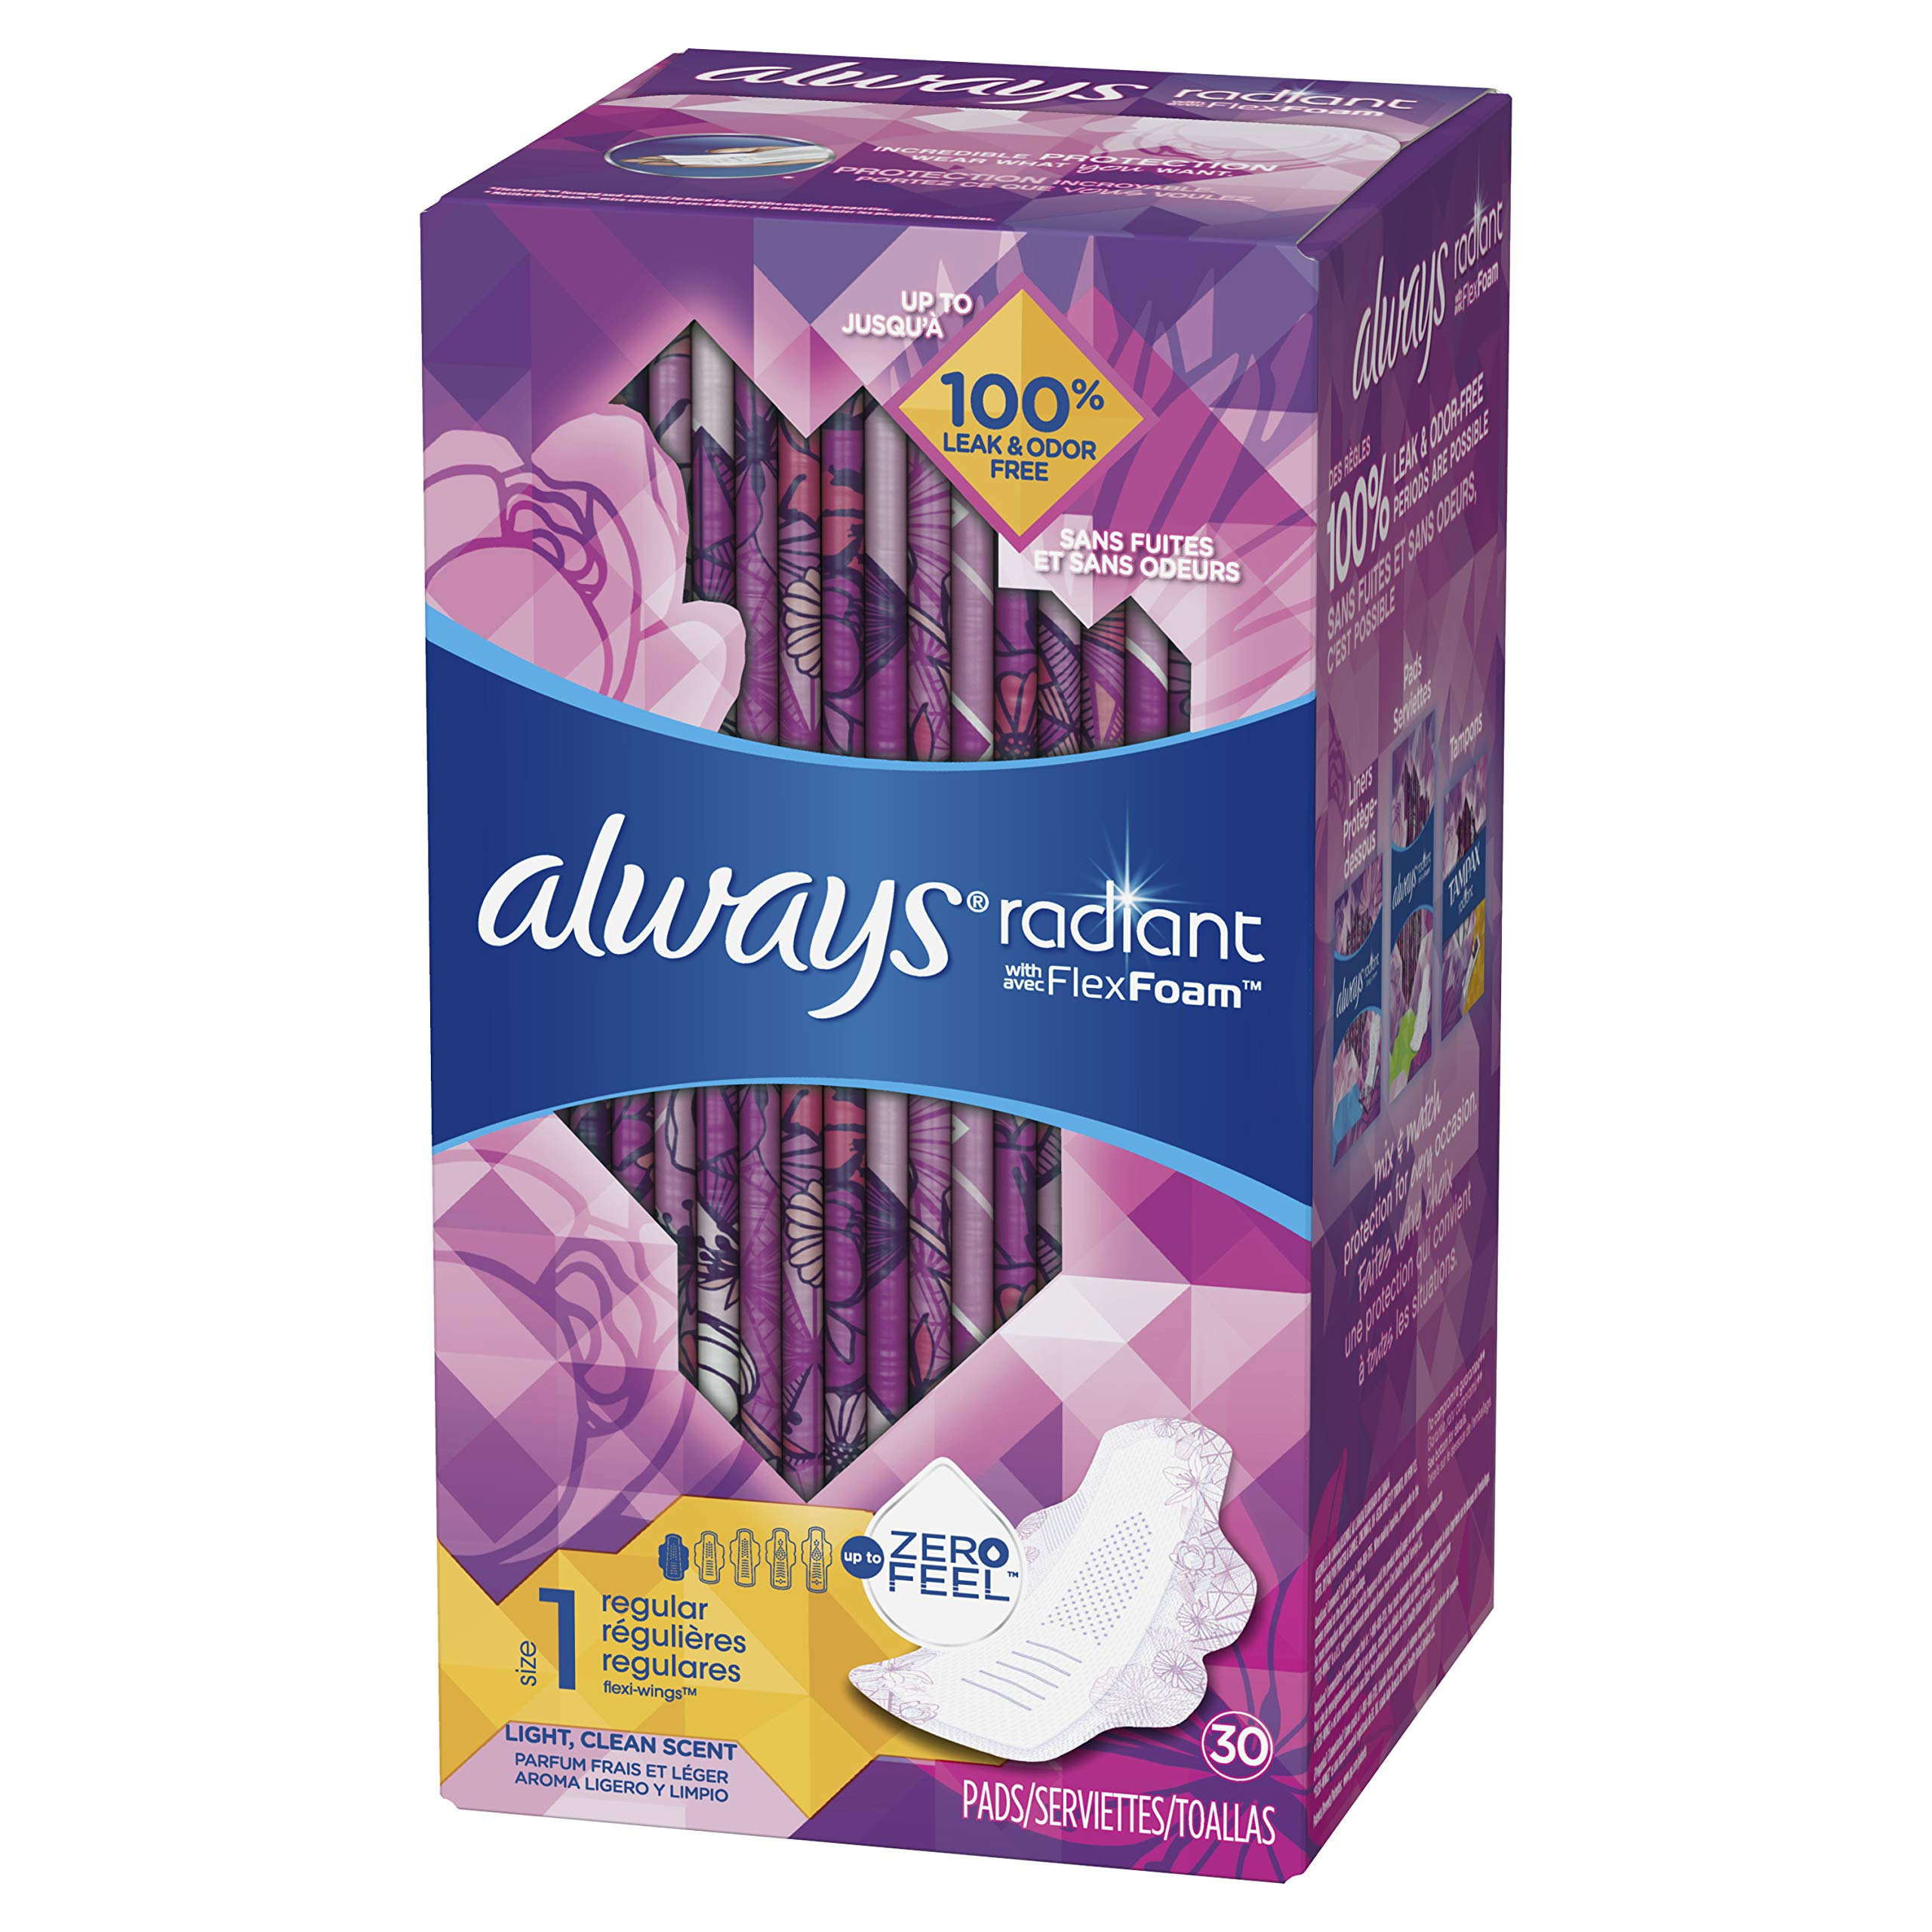 Always Radiant Feminine Pads for Women, Size 1, Regular Absorbency, Light Clean Scent, 30 Count- Pack of 6 (180 Count Total) (Artwork May Vary) by Always